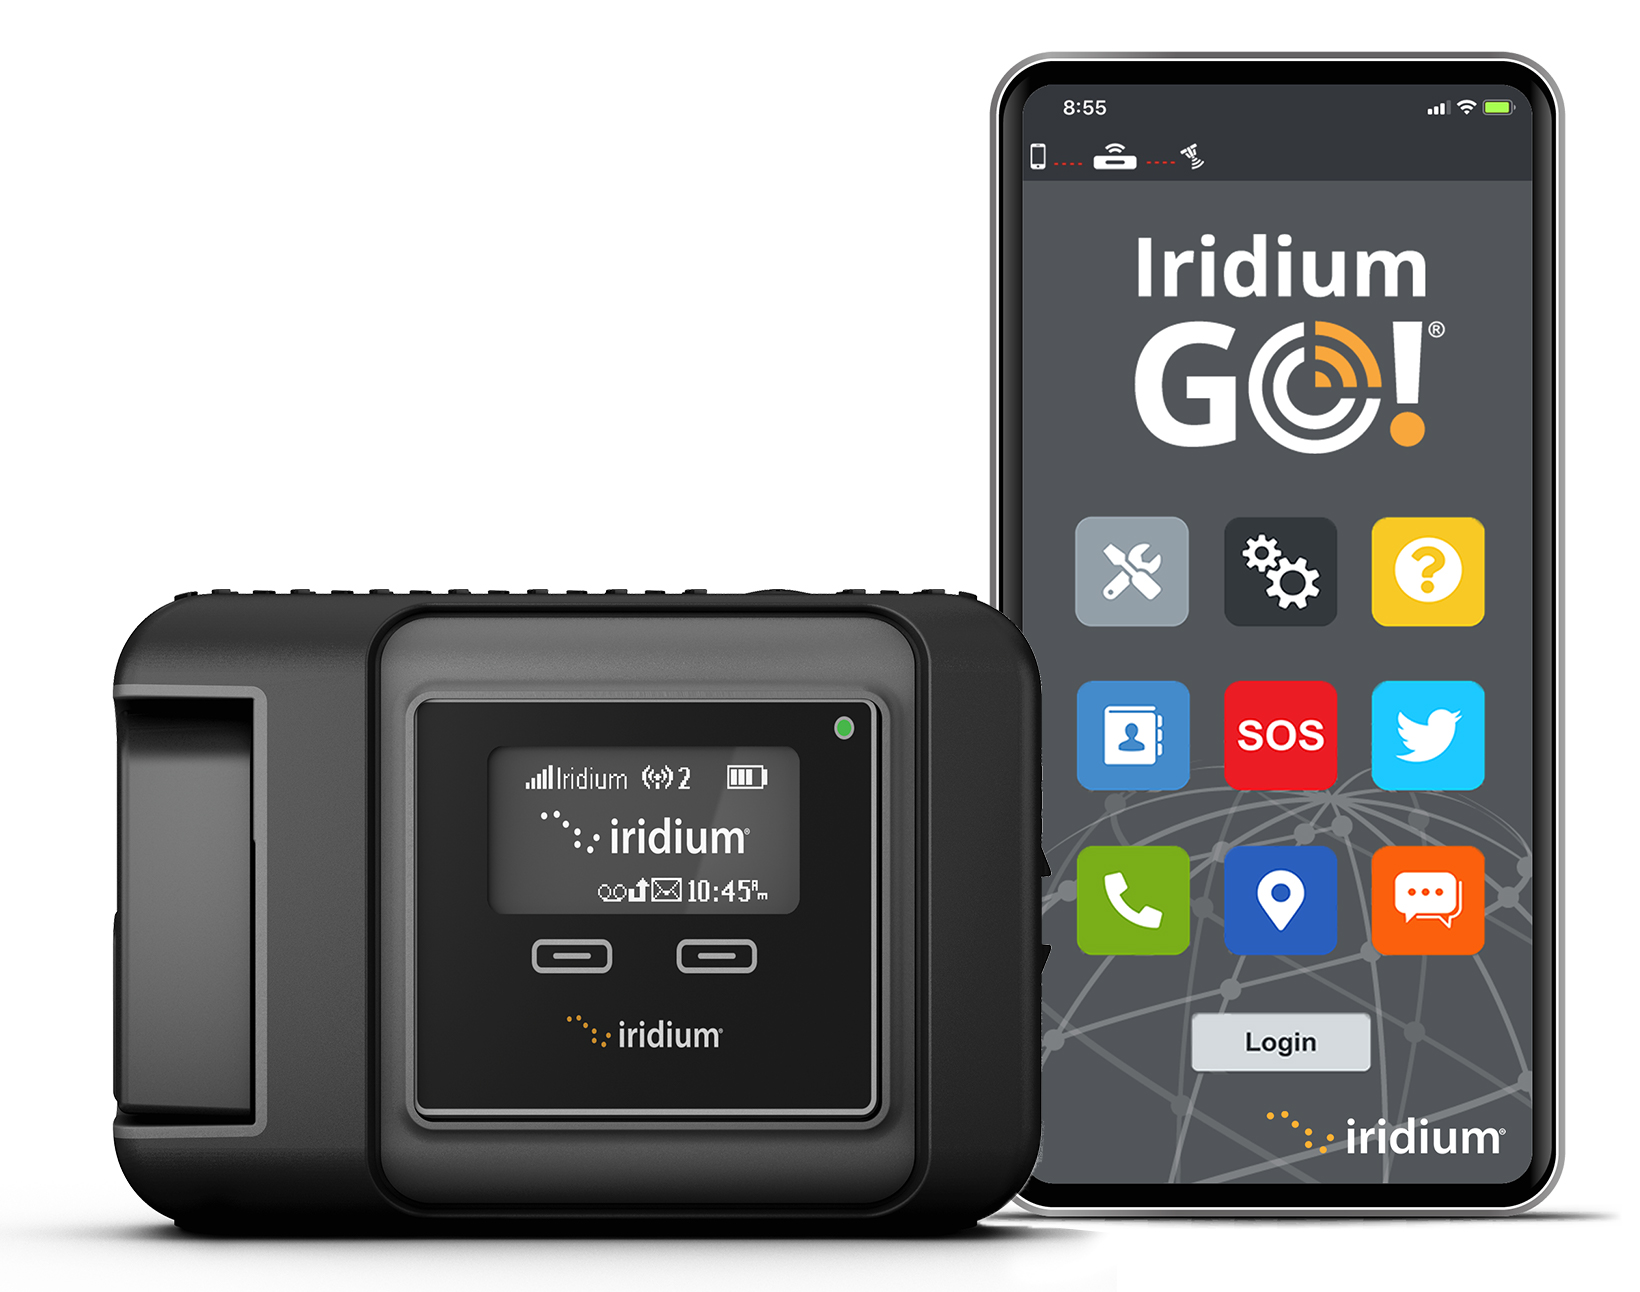 Updated Iridium GO App